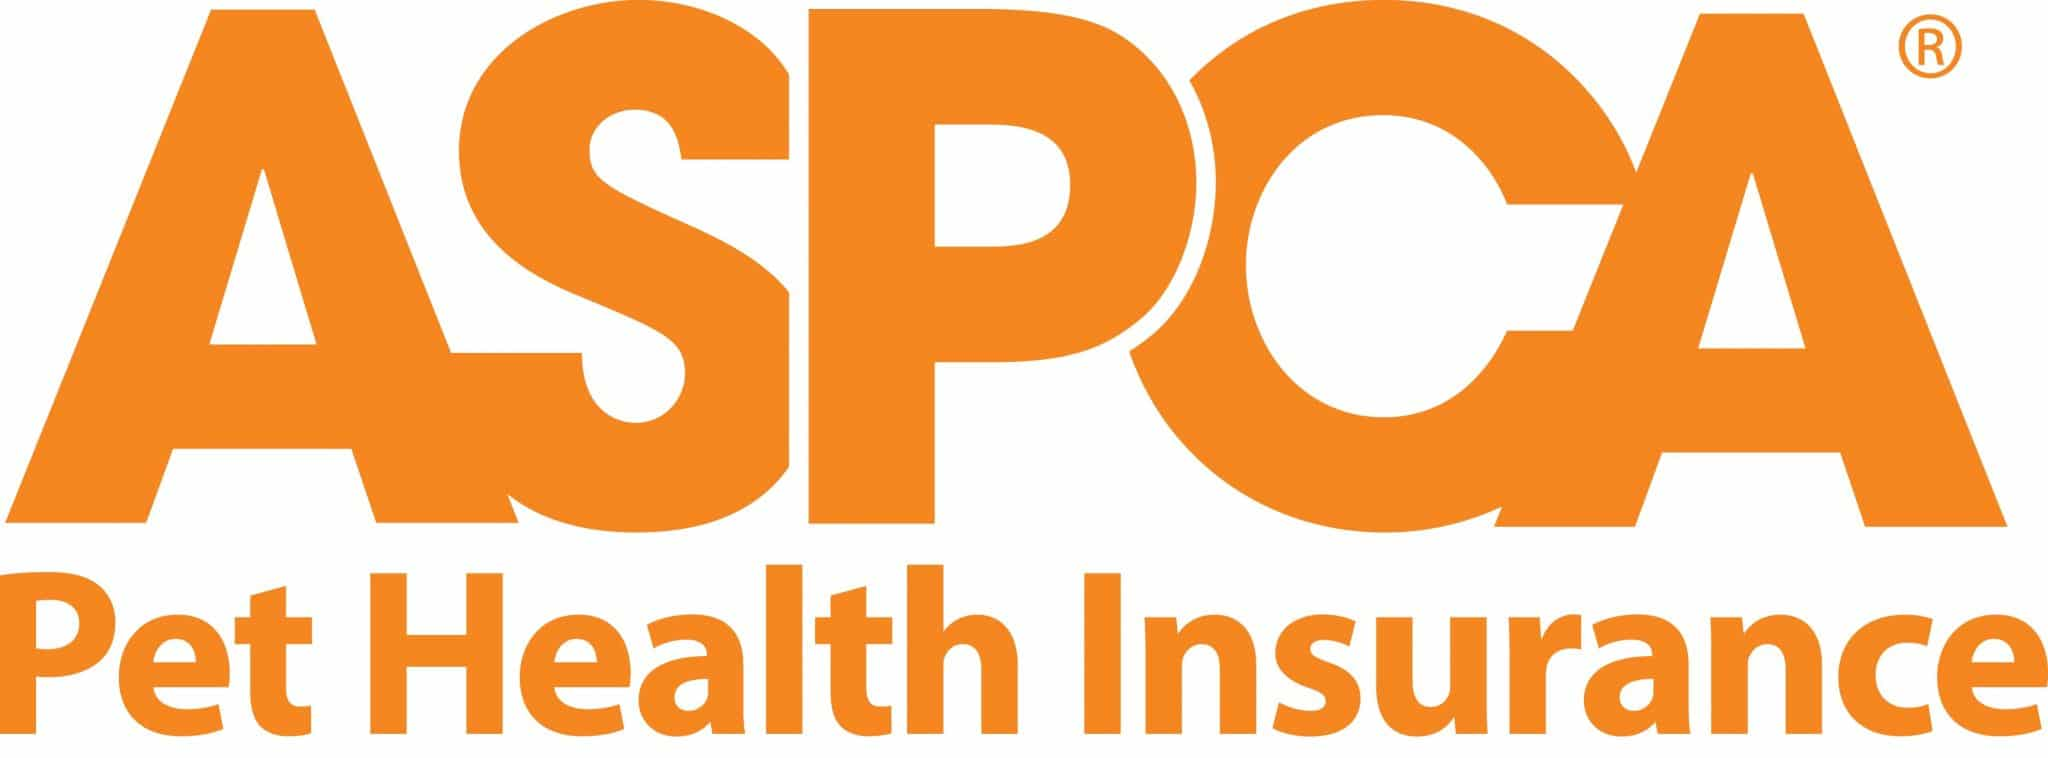 ASPCA health insurance logo